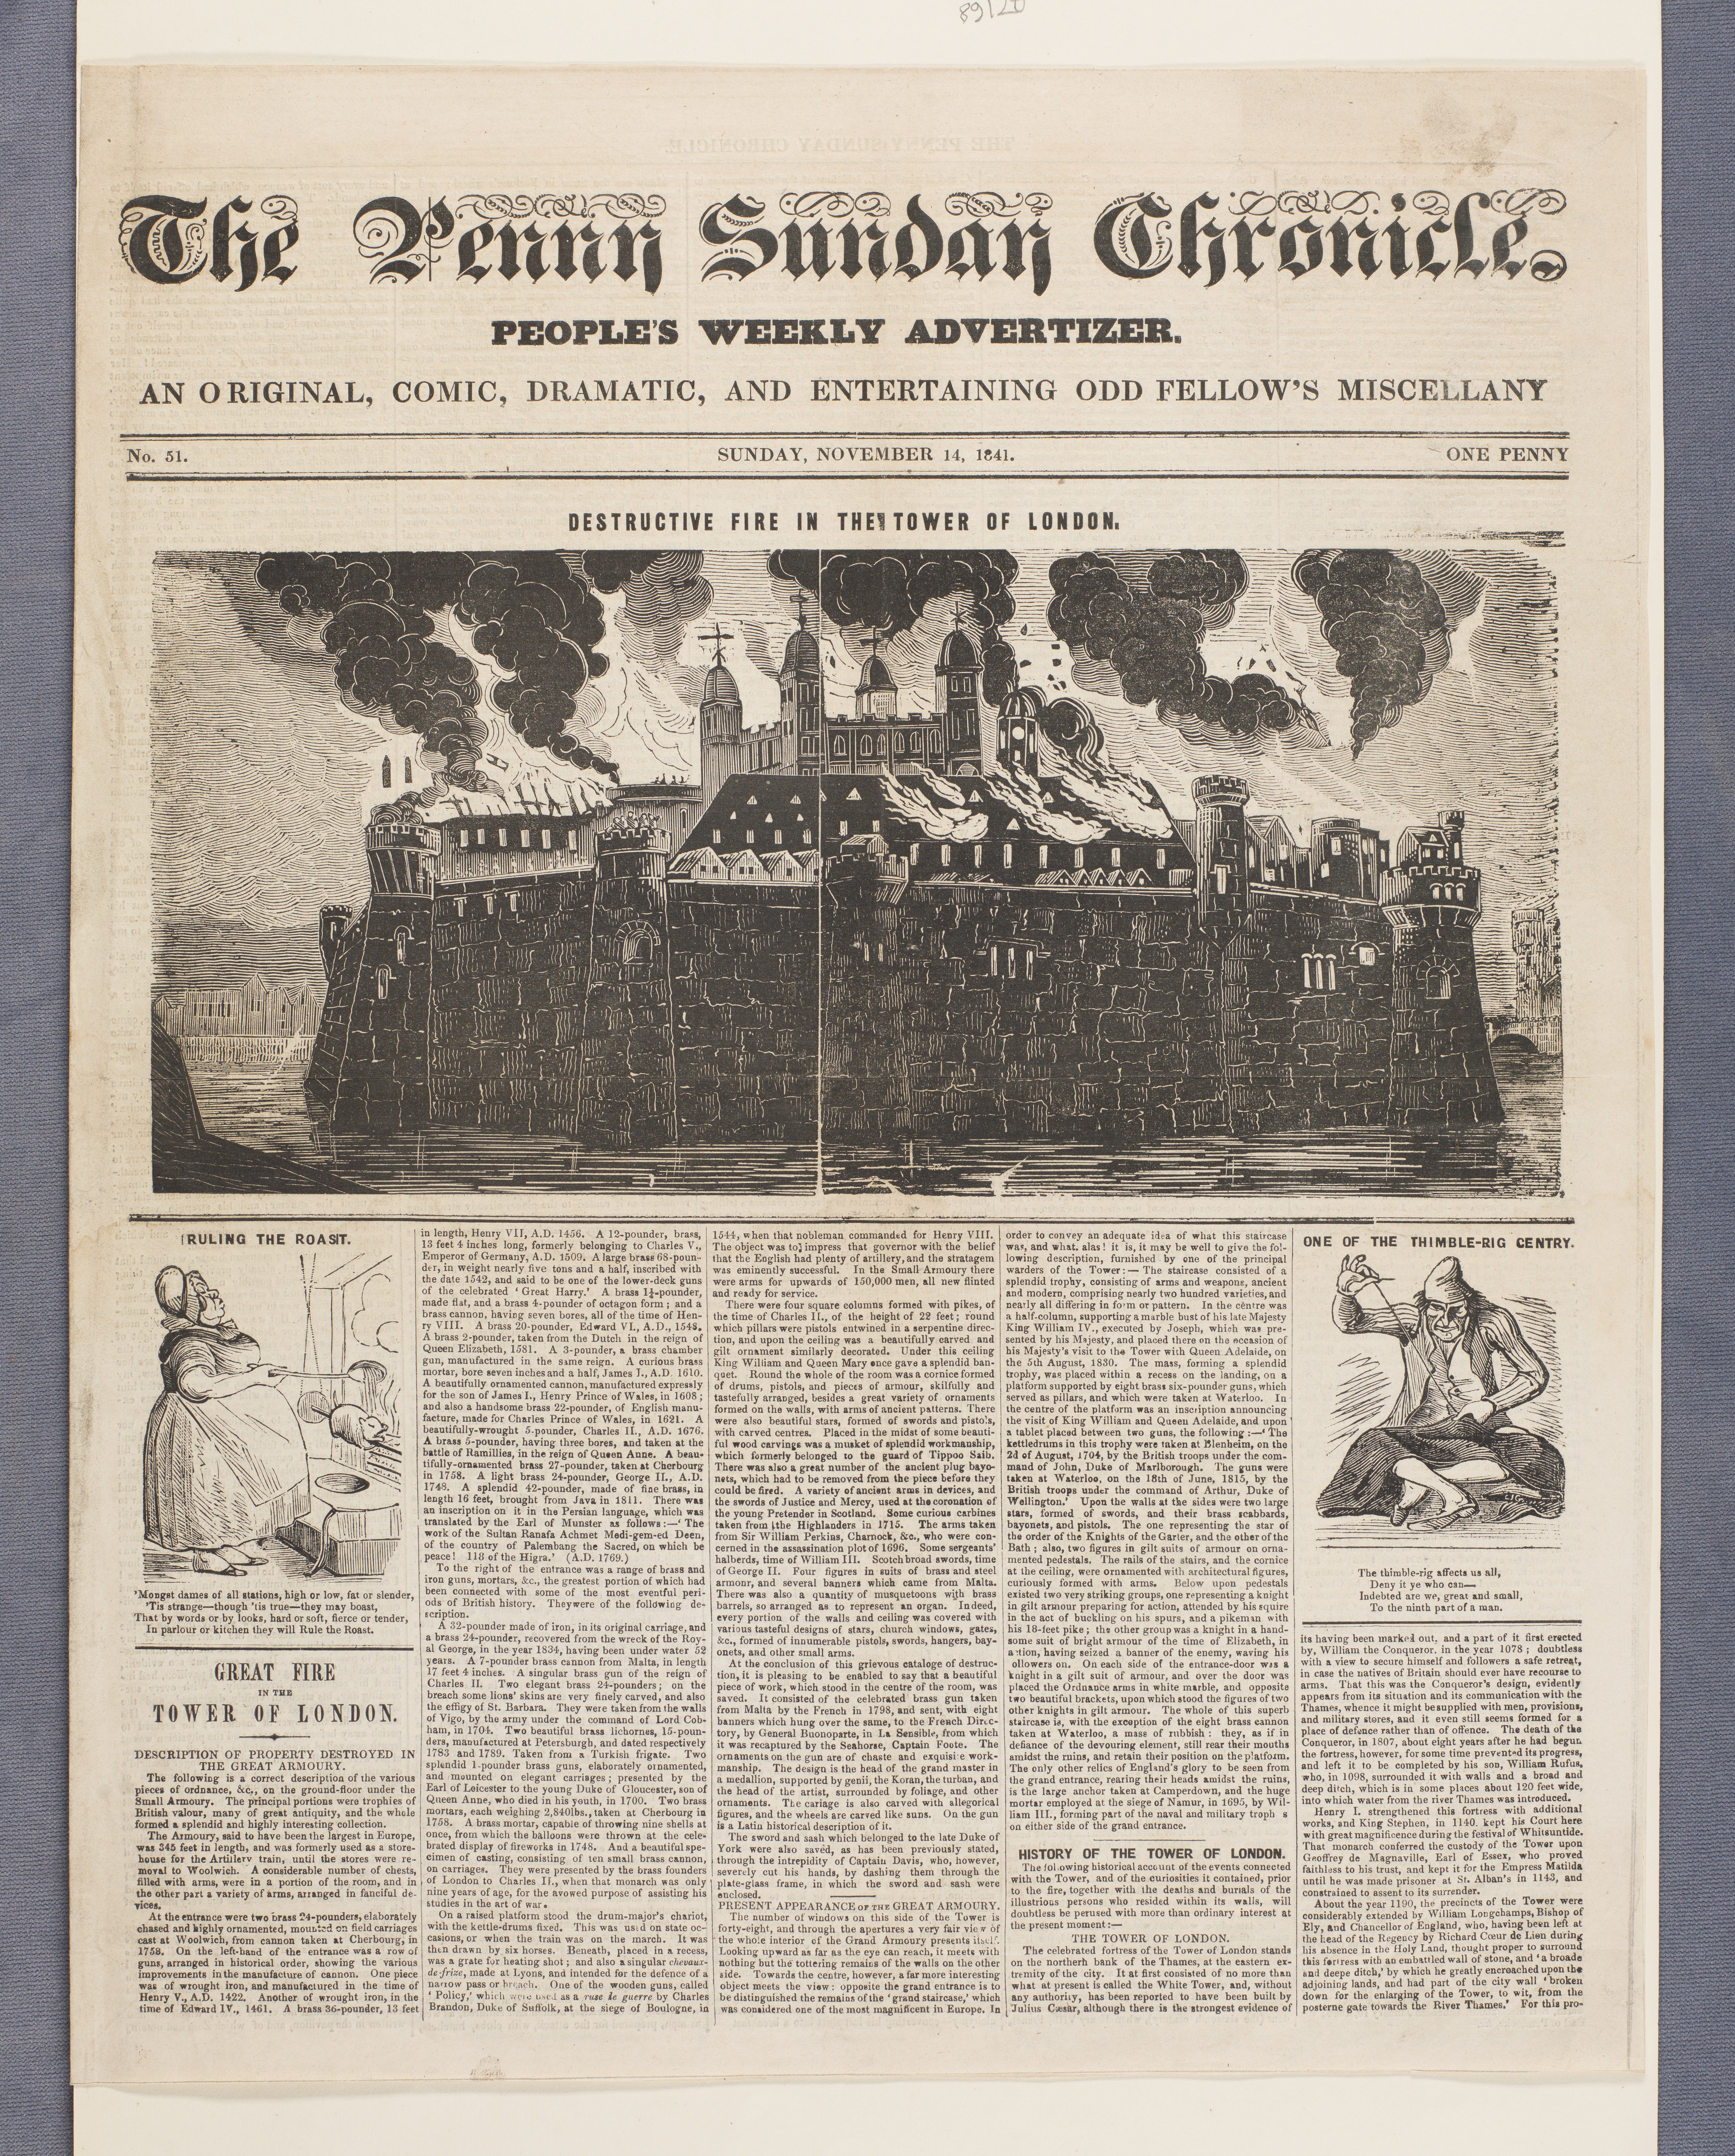 The penny Sunday chronicle newspaper